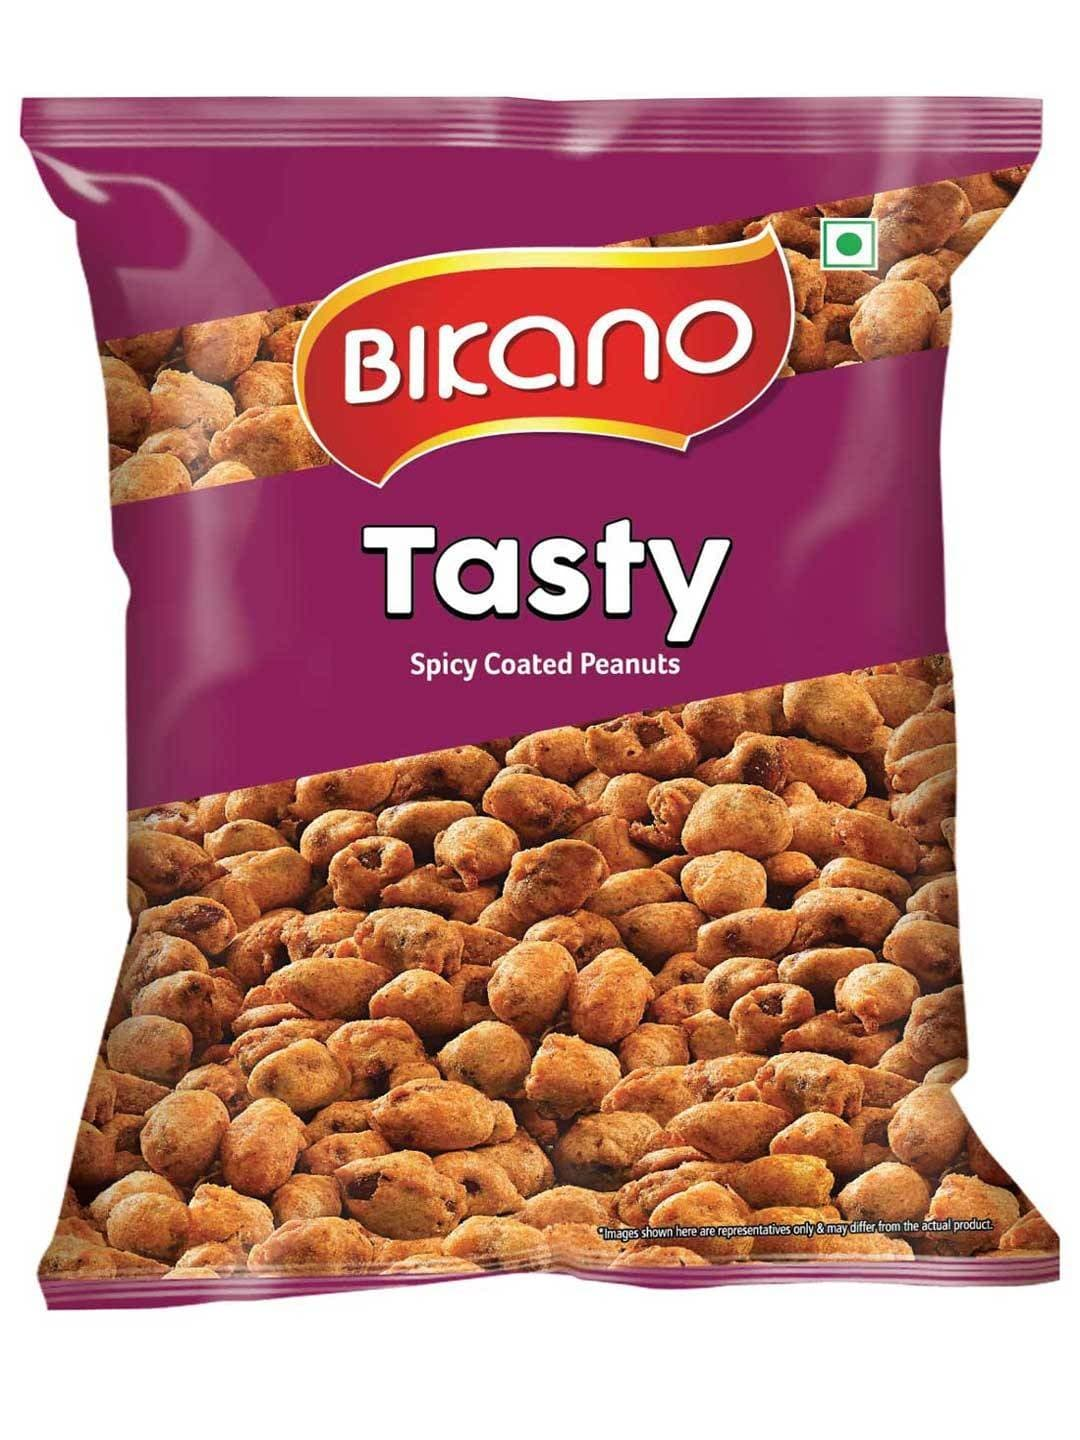 Bikano Tasty Spicy Coated Peanuts